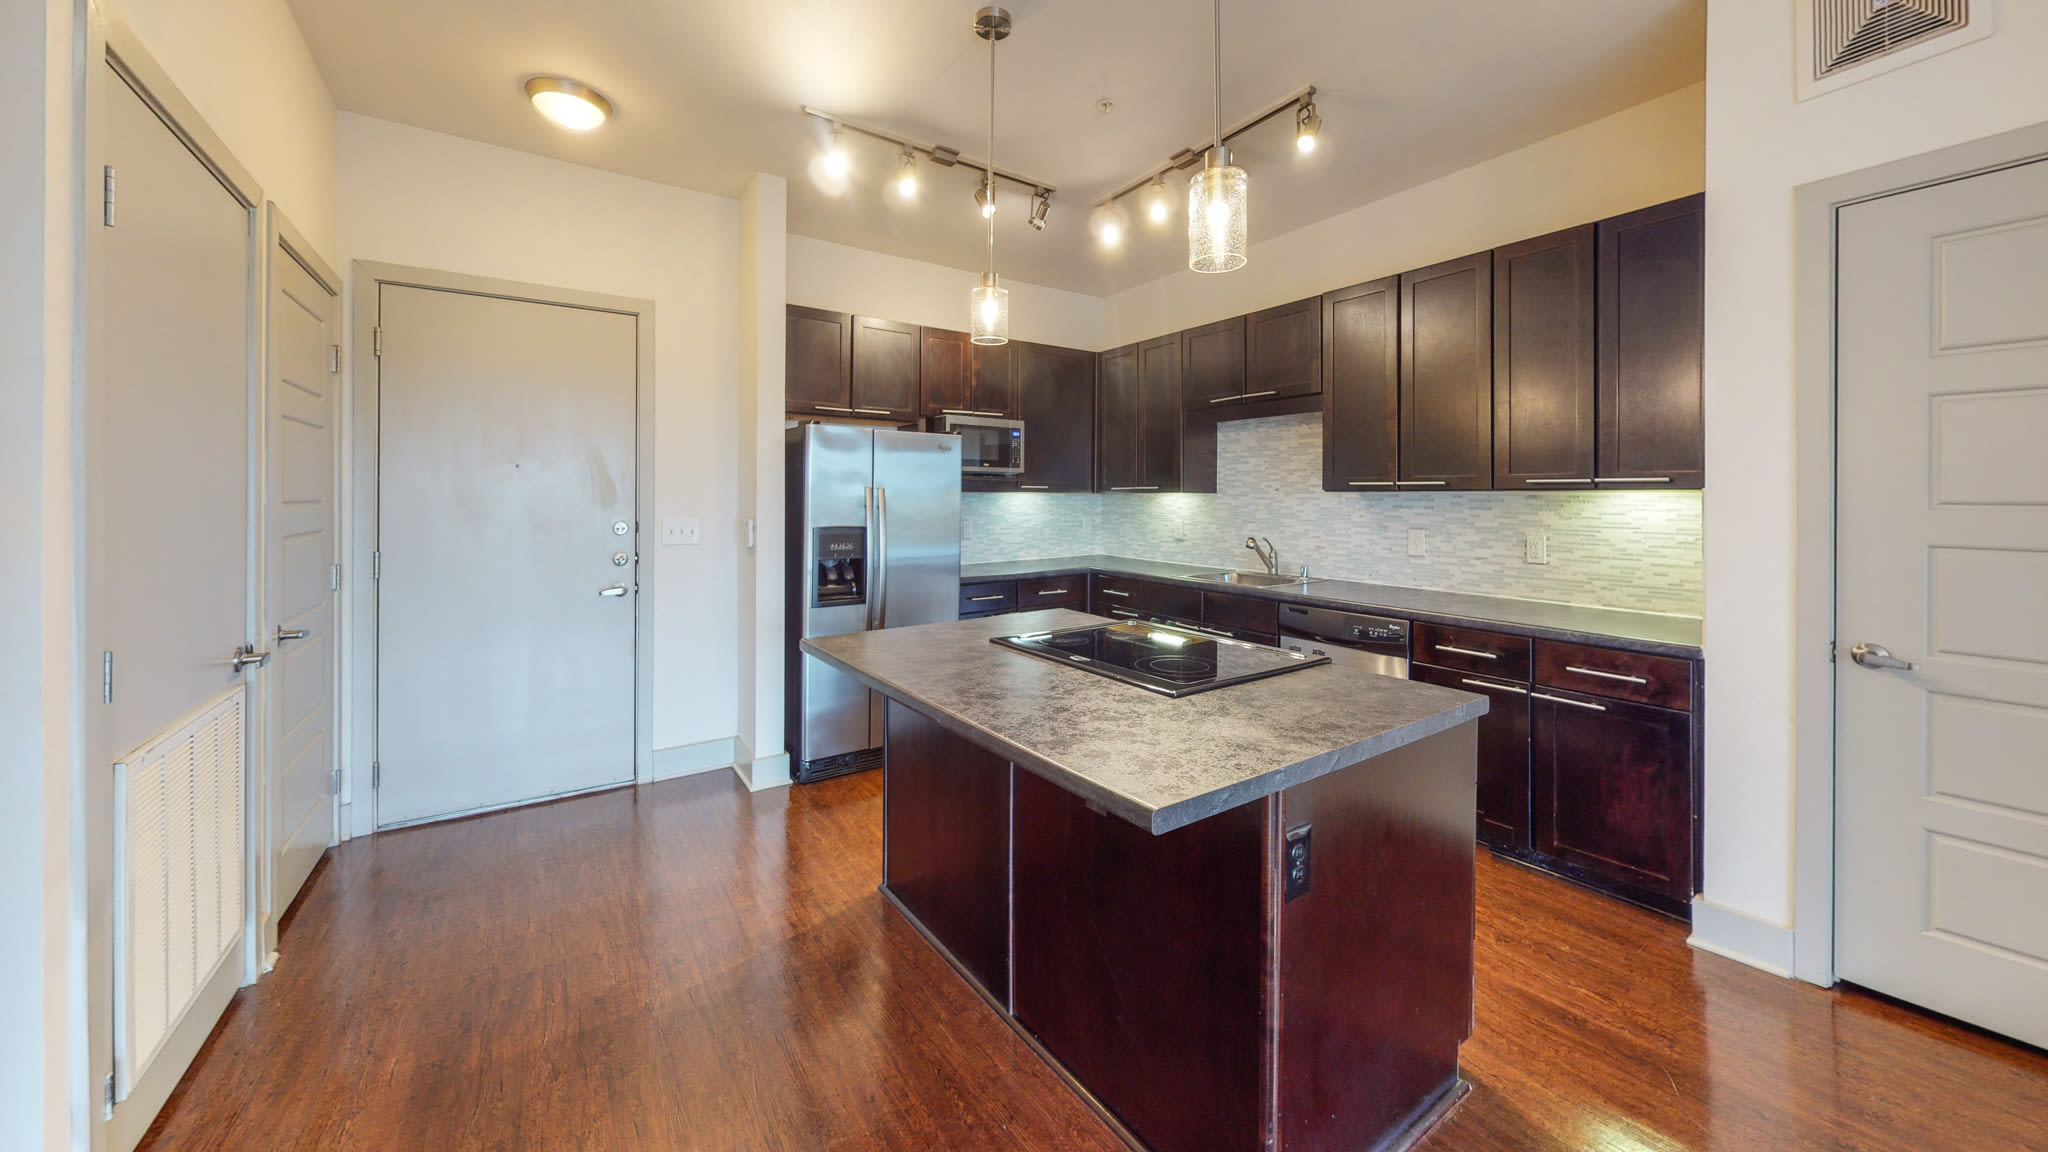 steel appliance kitchen with wood floors and bar seating island at Bellrock Bishop Arts in Dallas, Texas